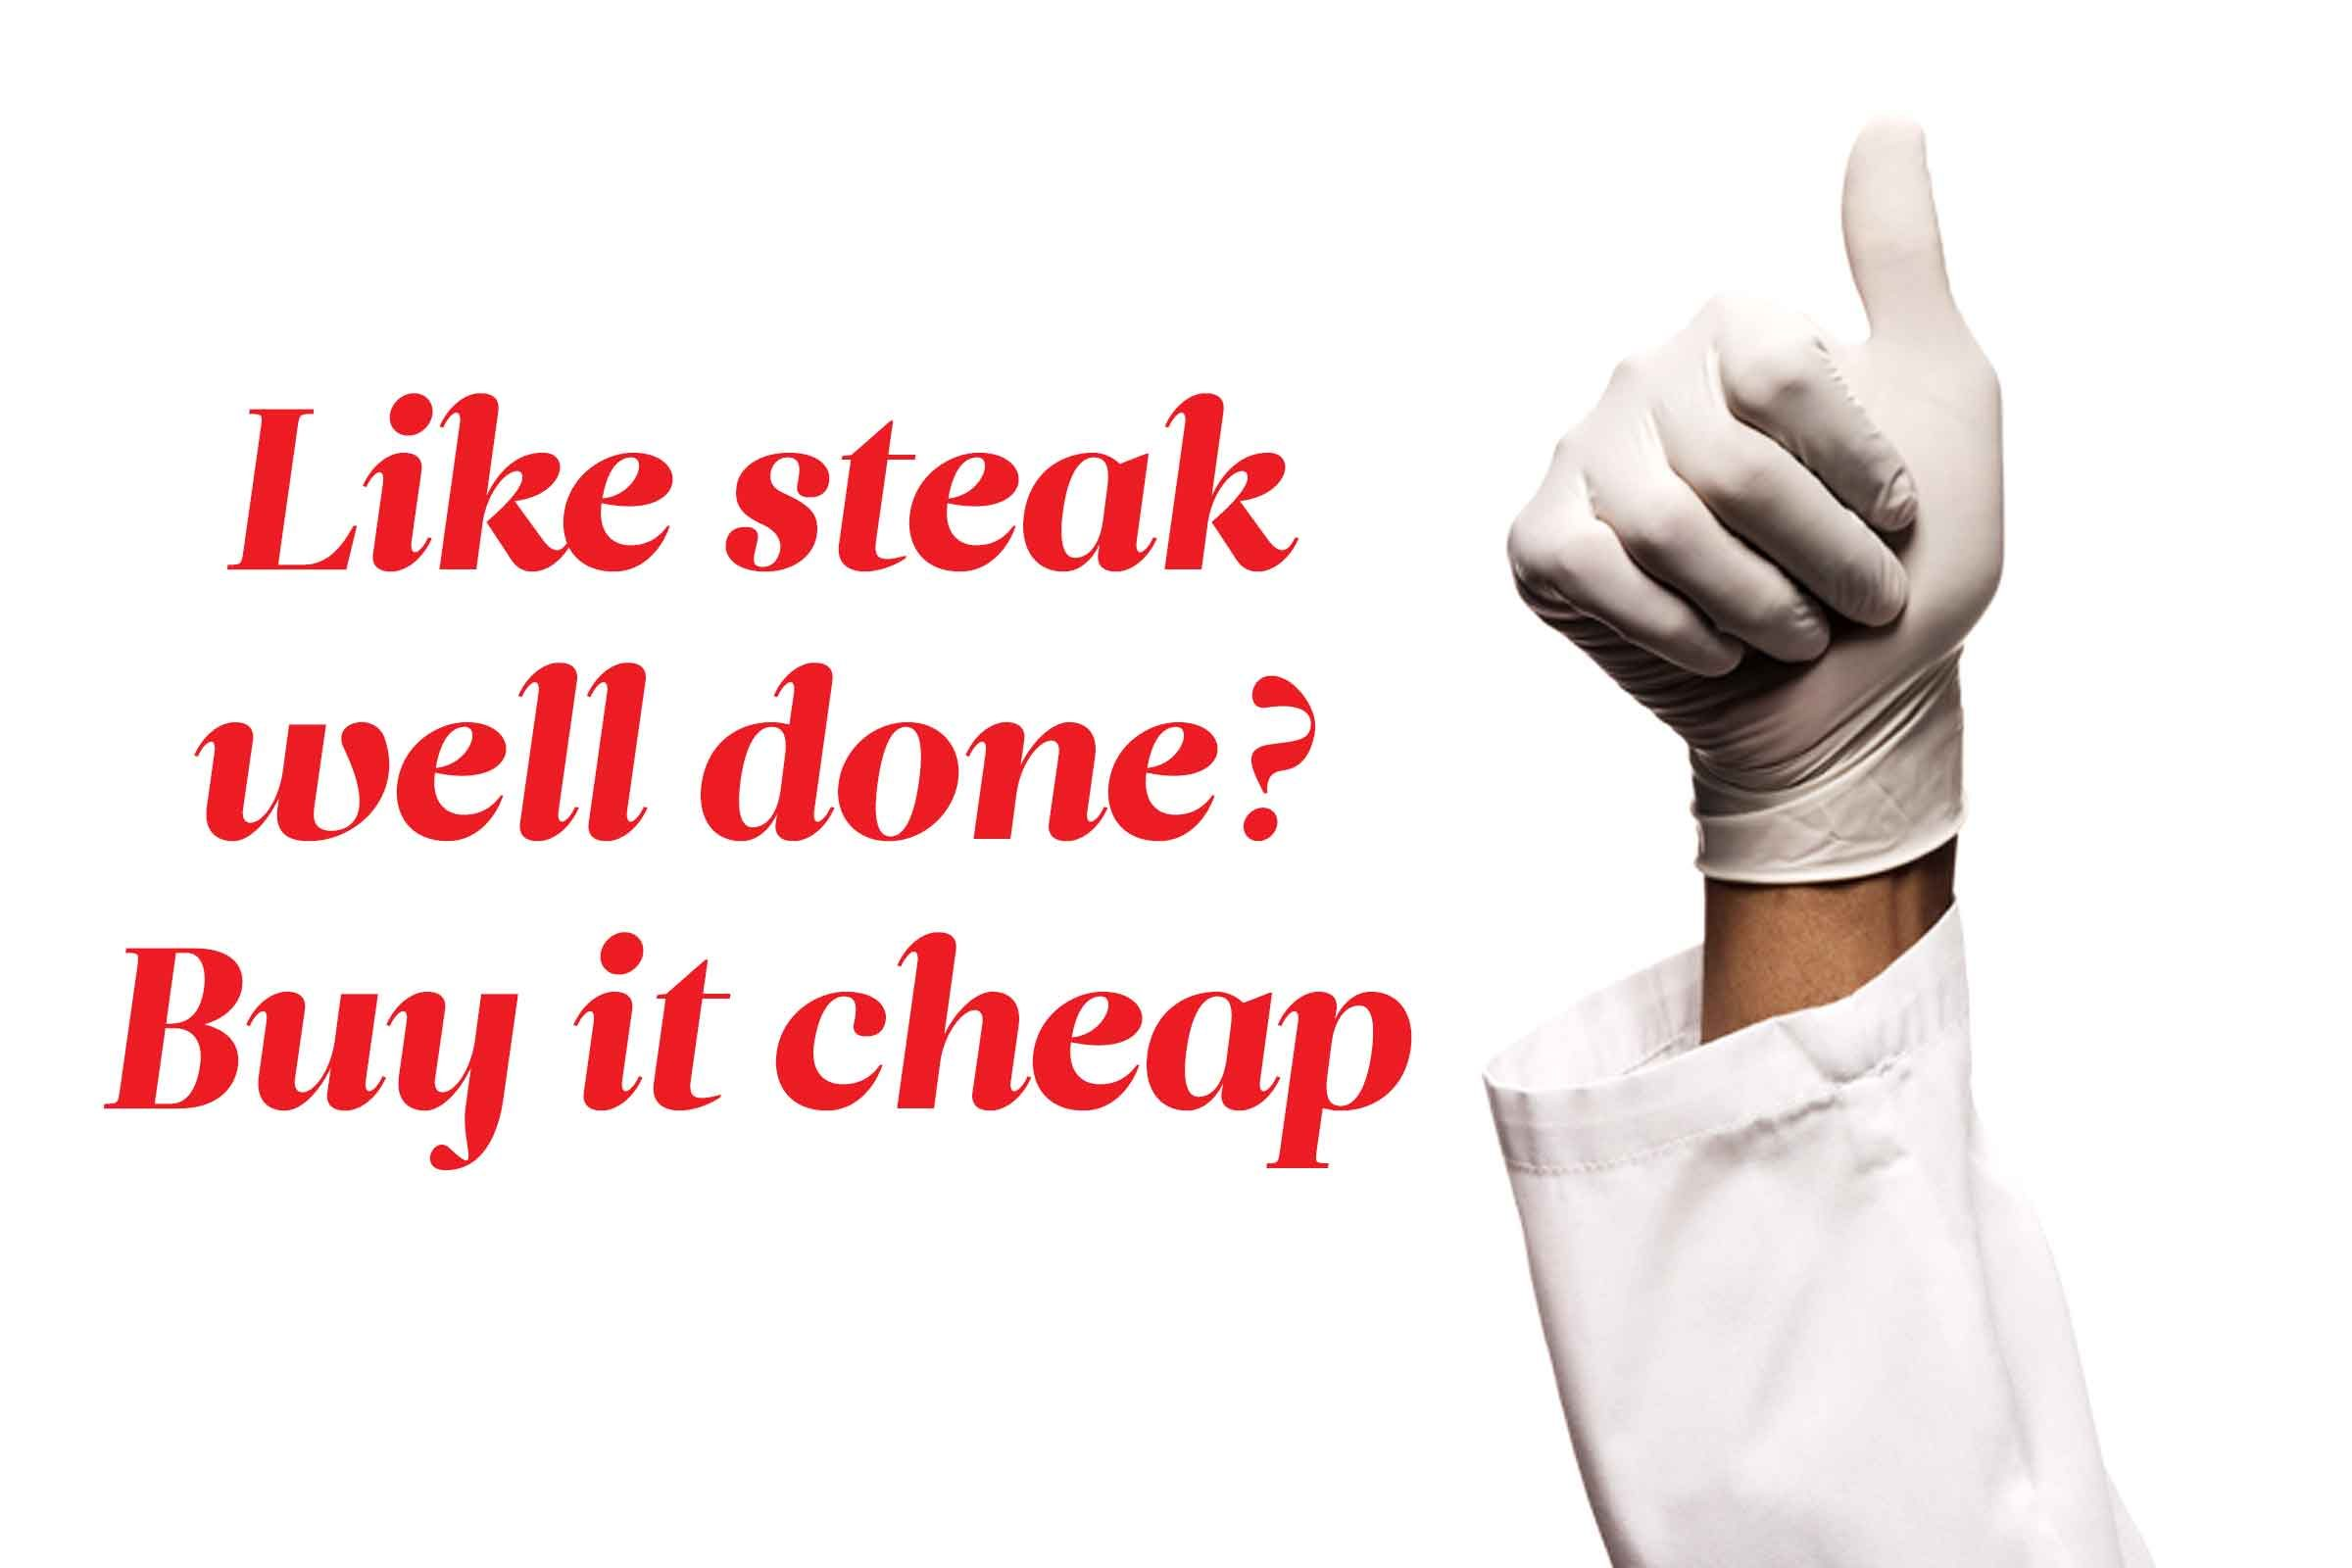 Here's how to save money on steak: